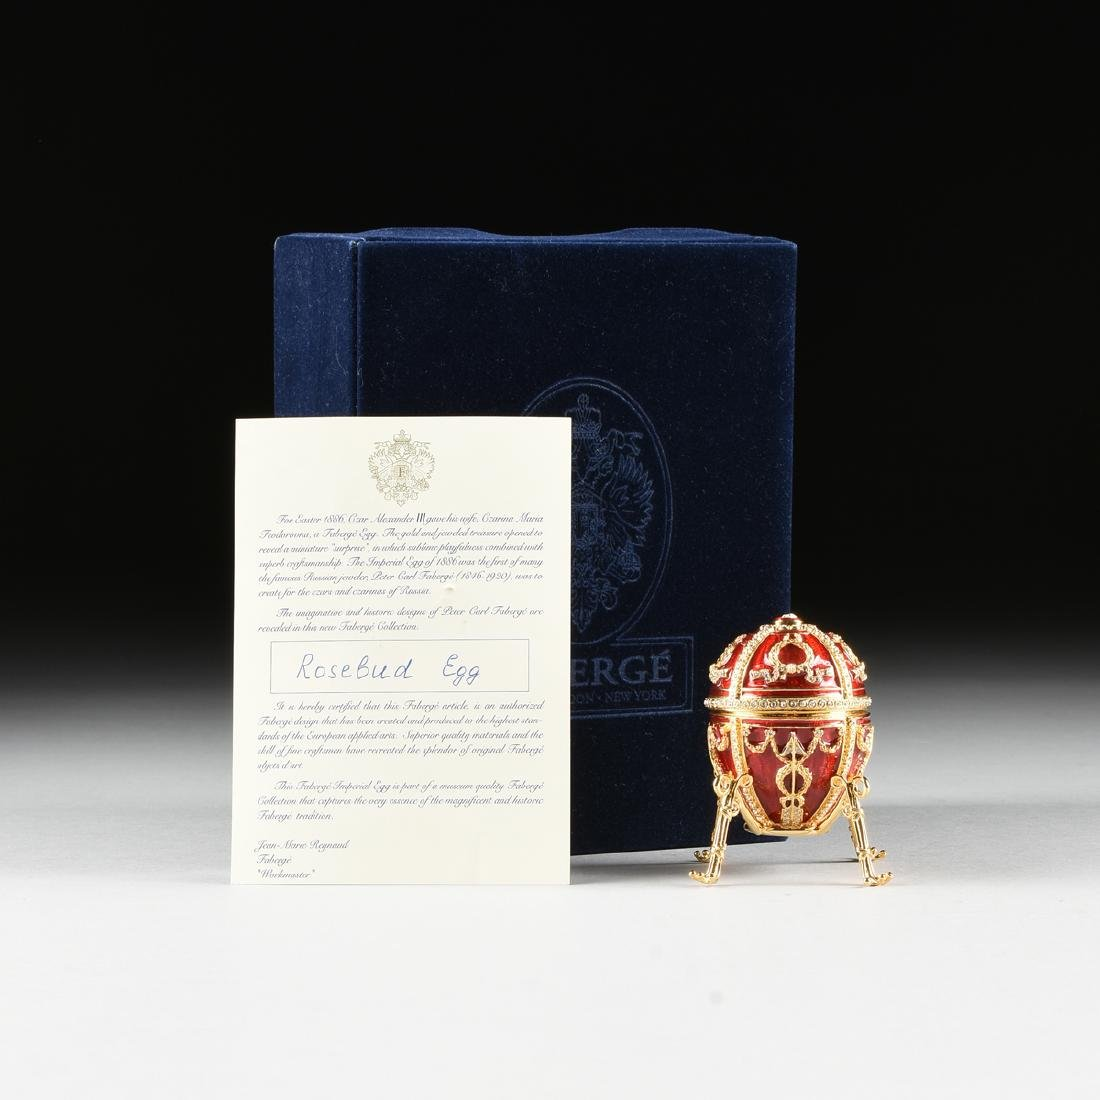 "A FABERGE INSPIRED EGG ORNAMENT IN THE ""ROSEBUD EGG"" - 4"